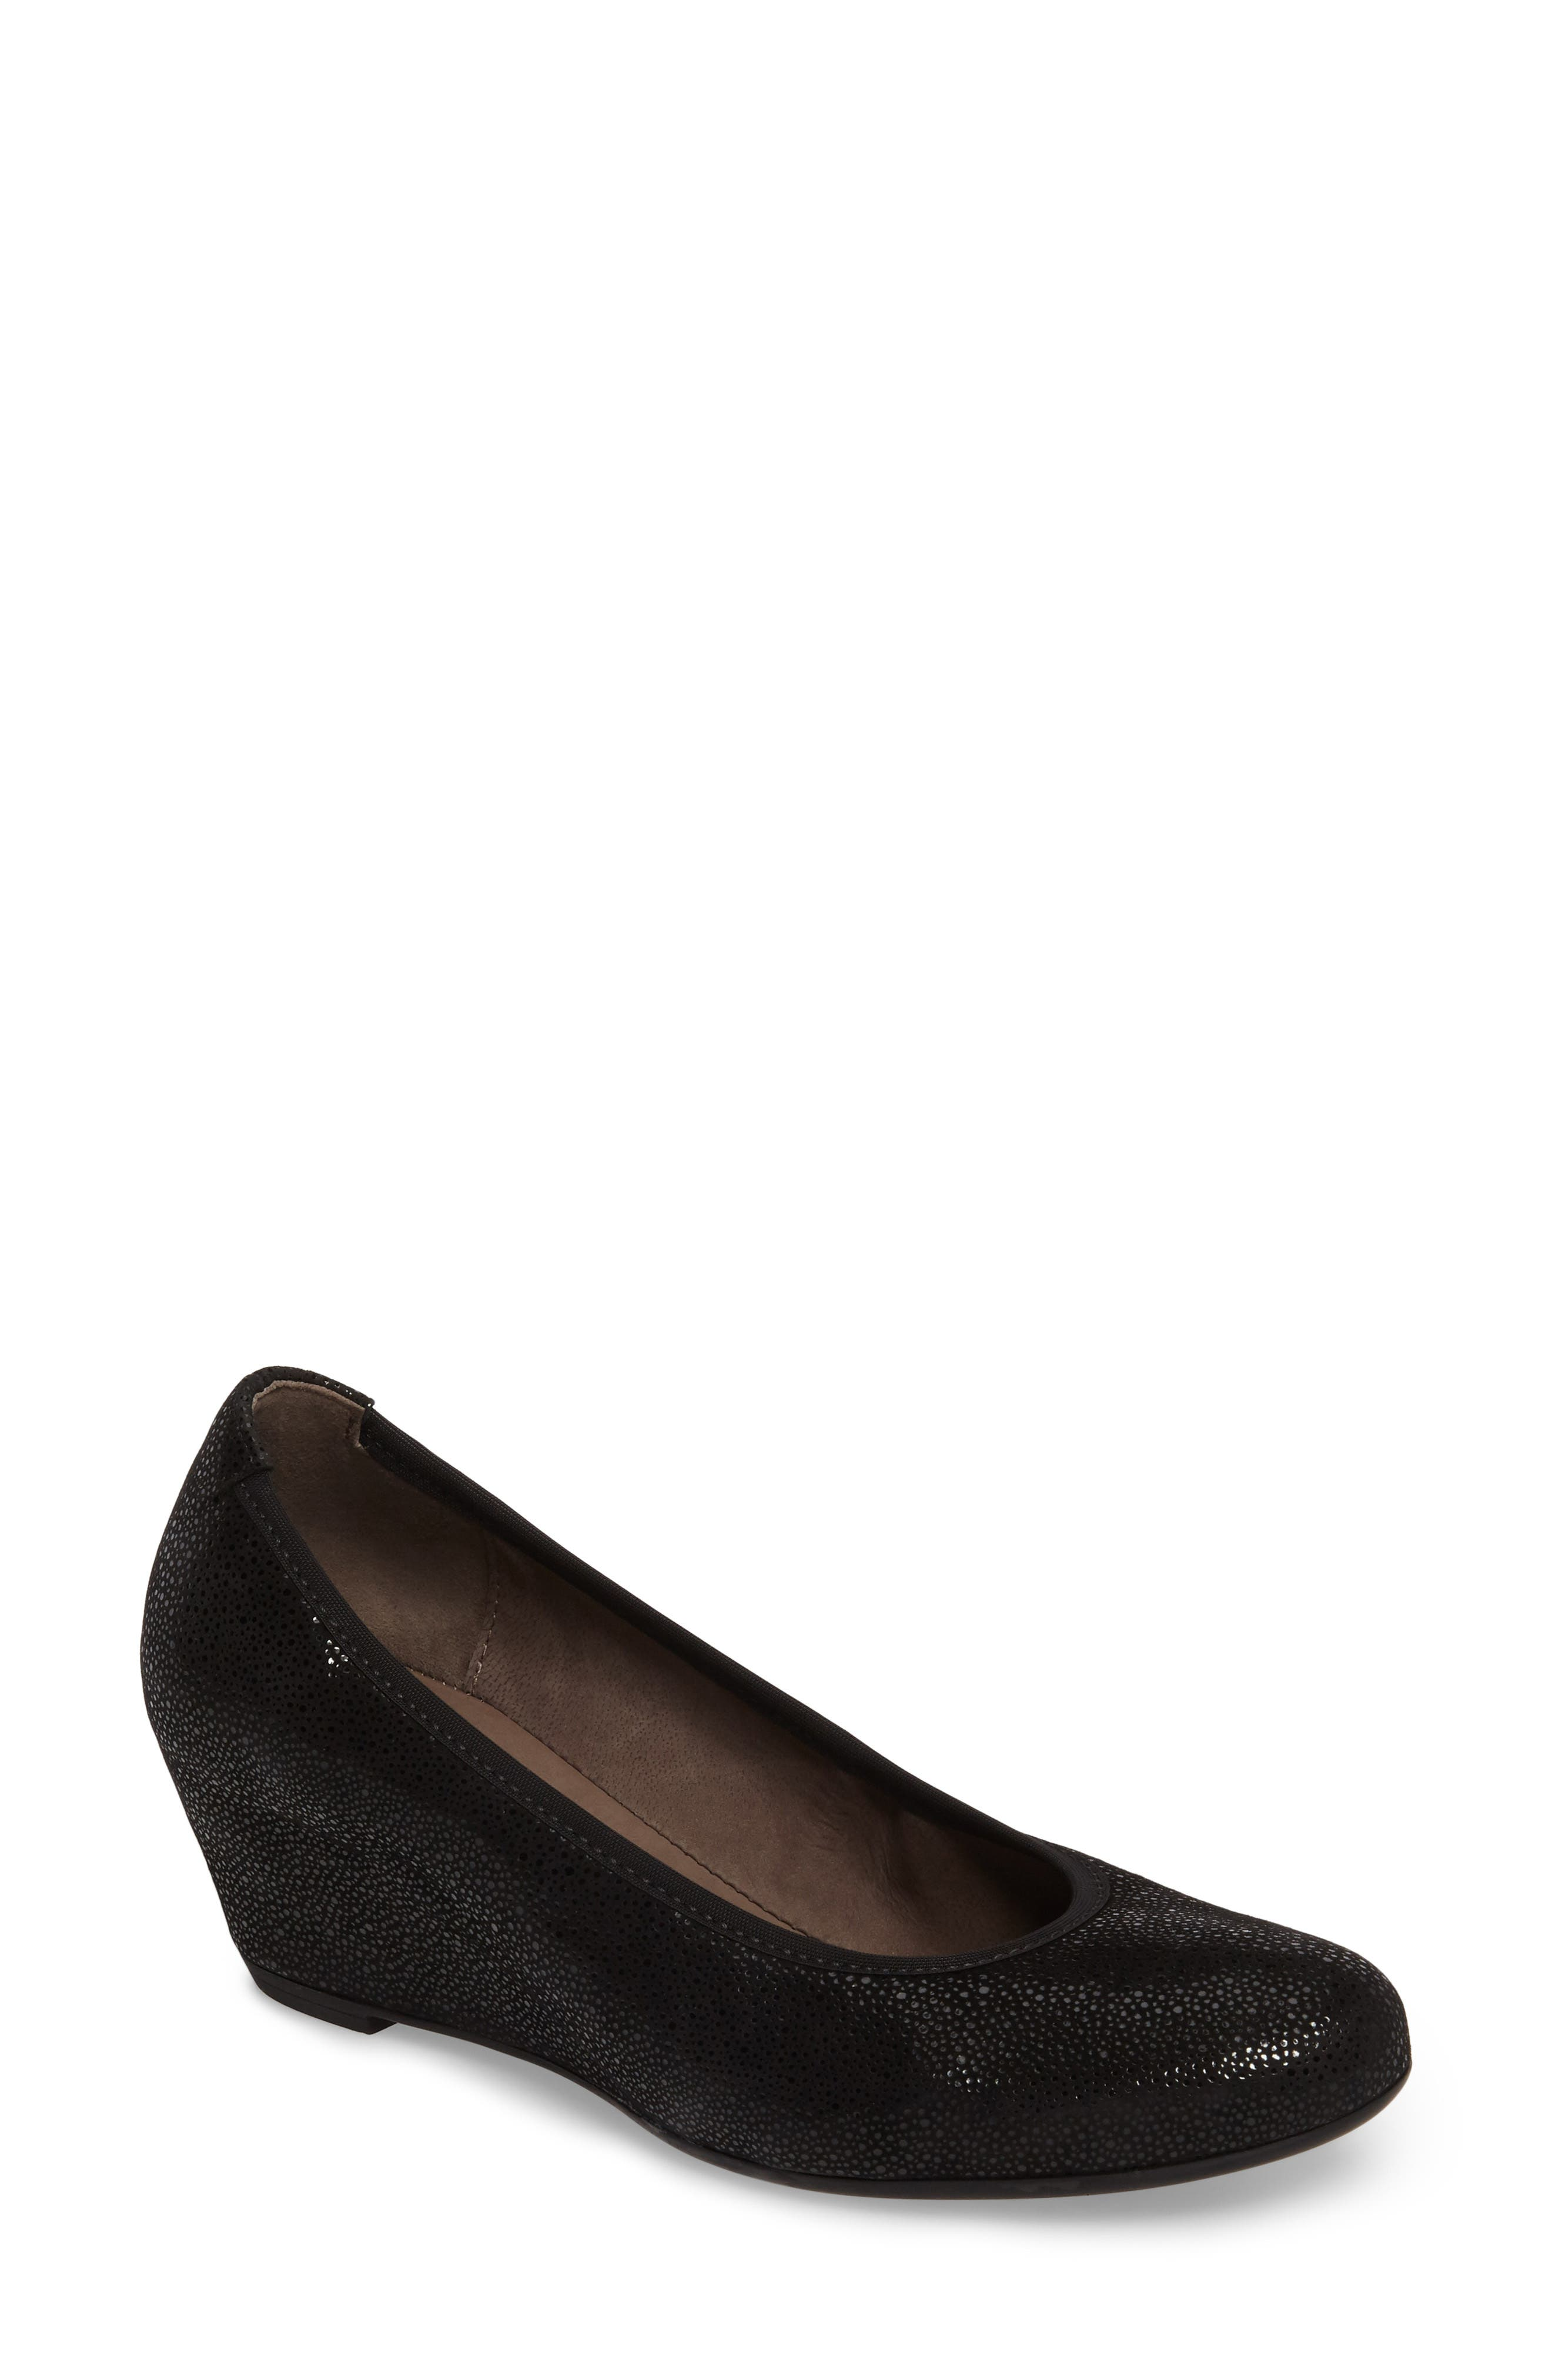 Wedge Pump,                         Main,                         color, Black Glitter Leather